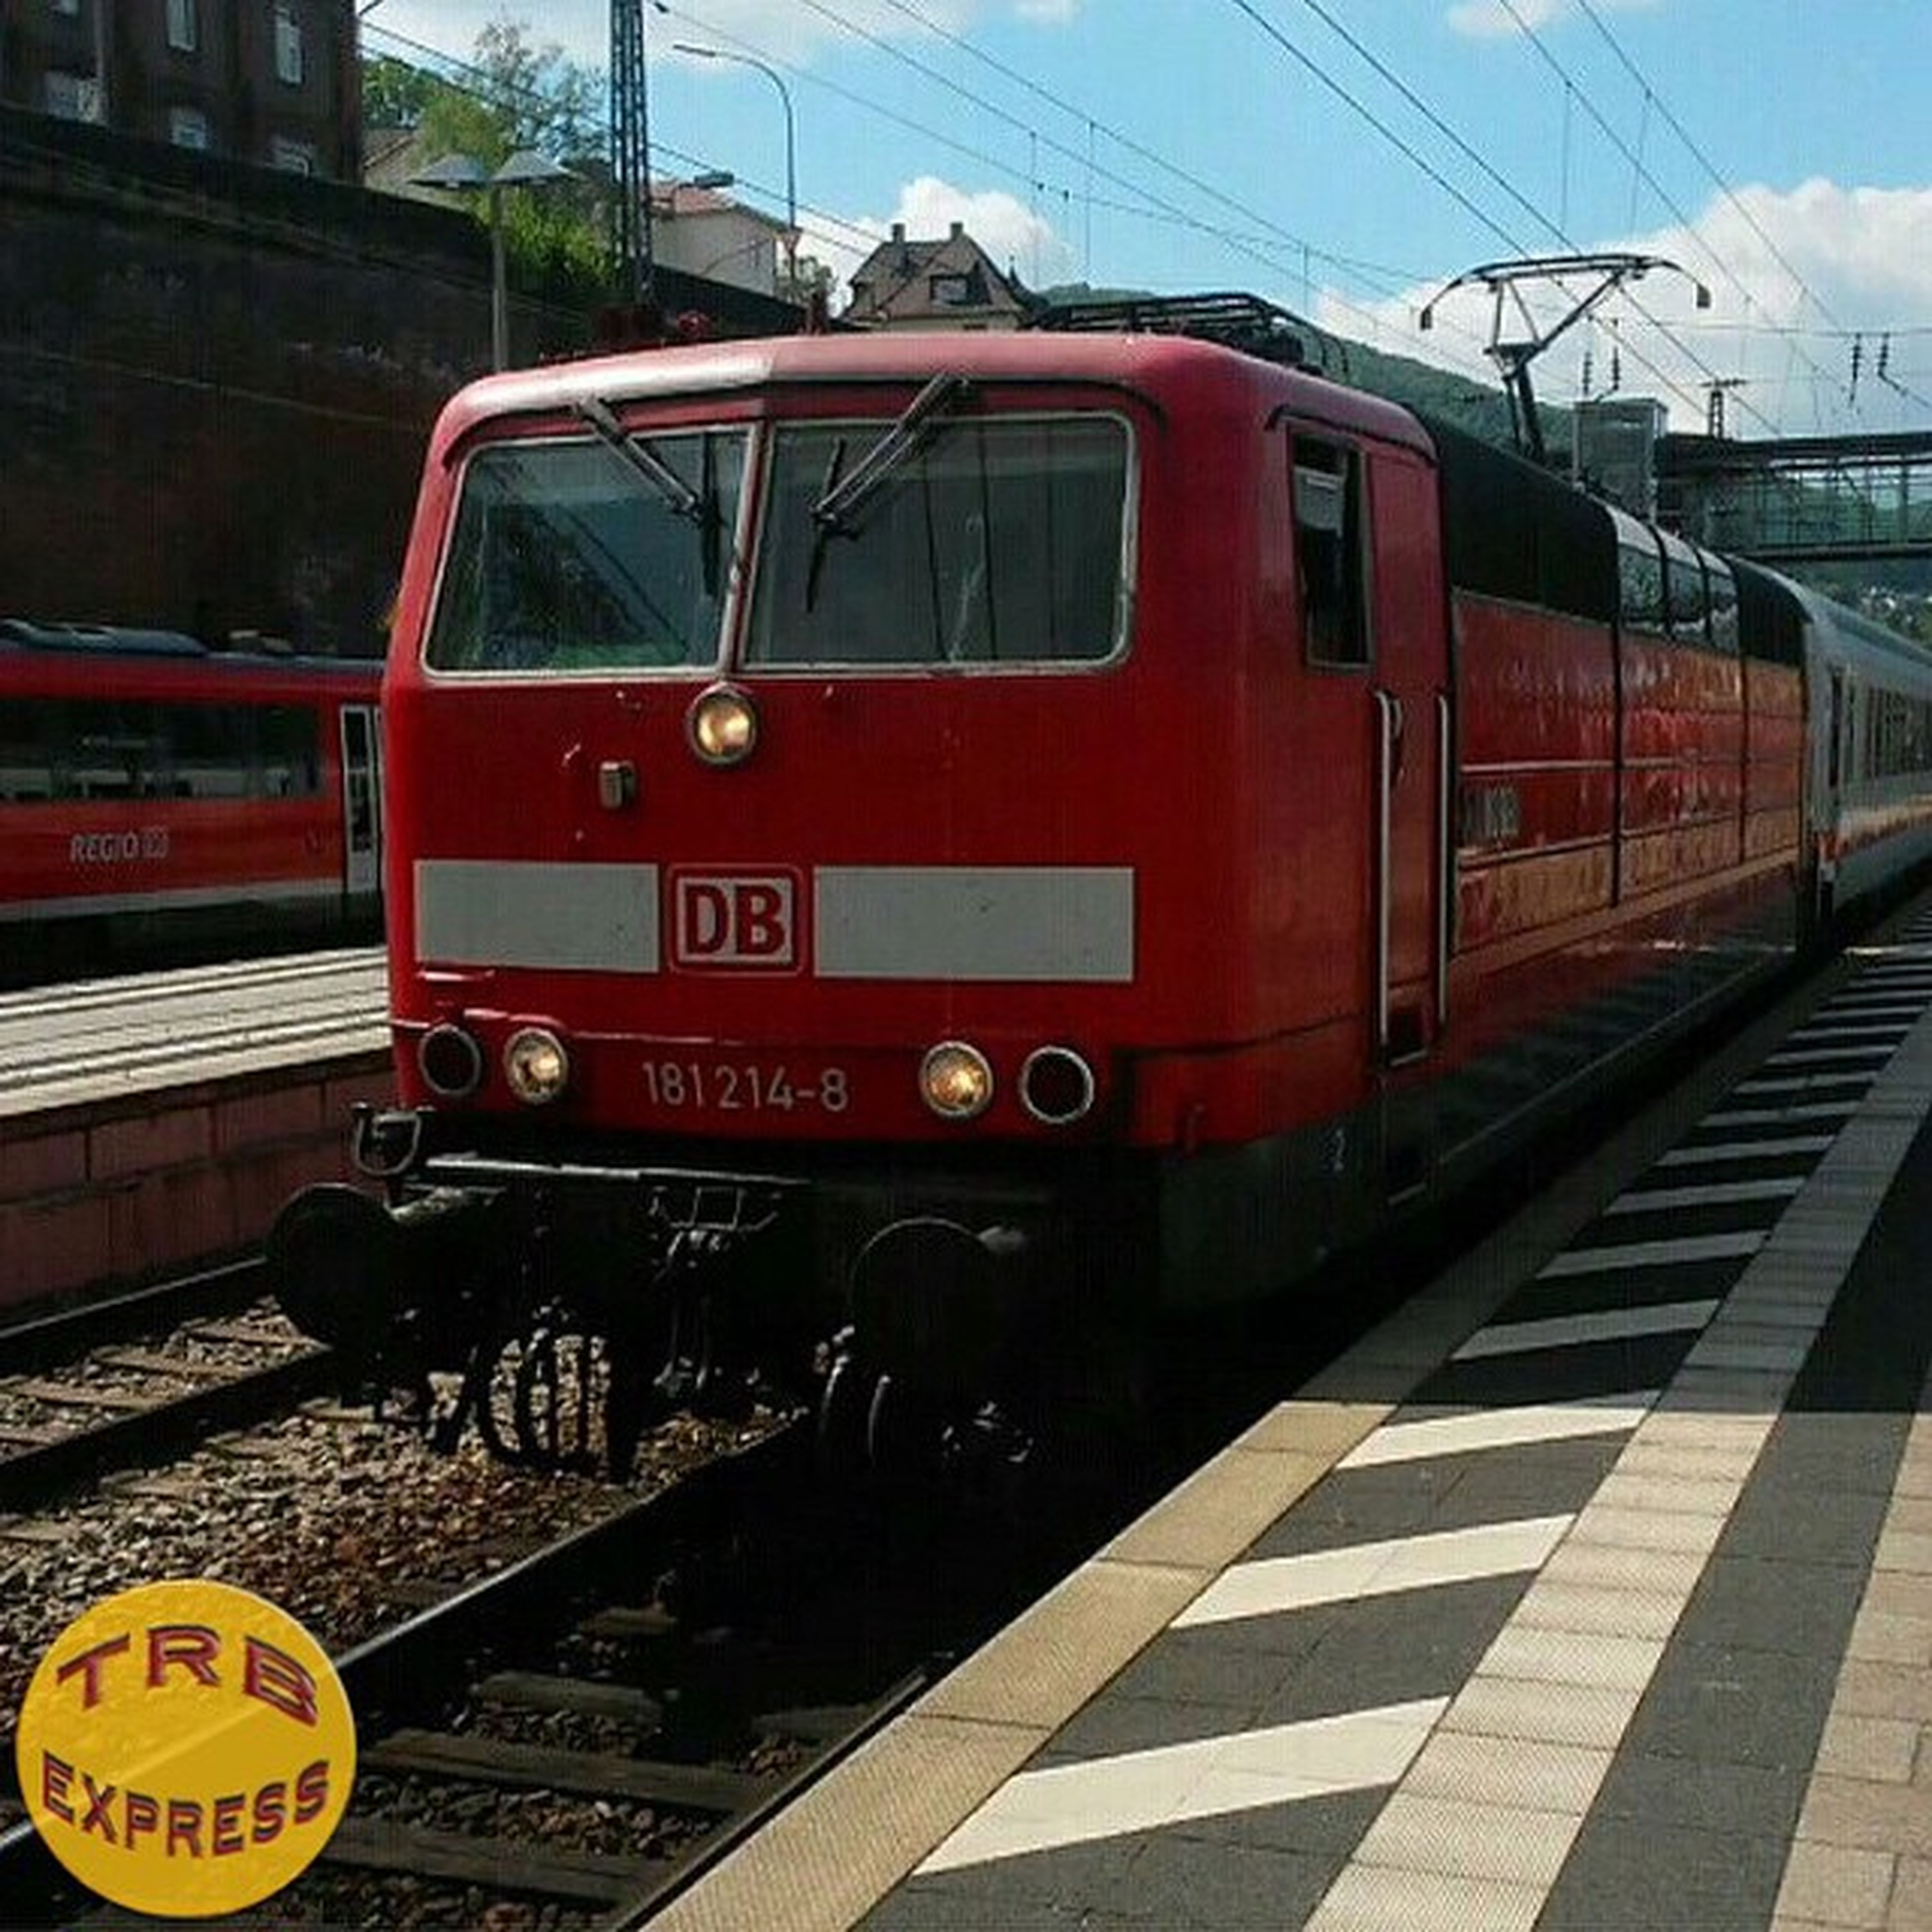 railroad track, transportation, rail transportation, public transportation, railroad station, train - vehicle, mode of transport, railroad station platform, passenger train, train, travel, public transport, text, communication, land vehicle, journey, power line, red, cable car, railway station